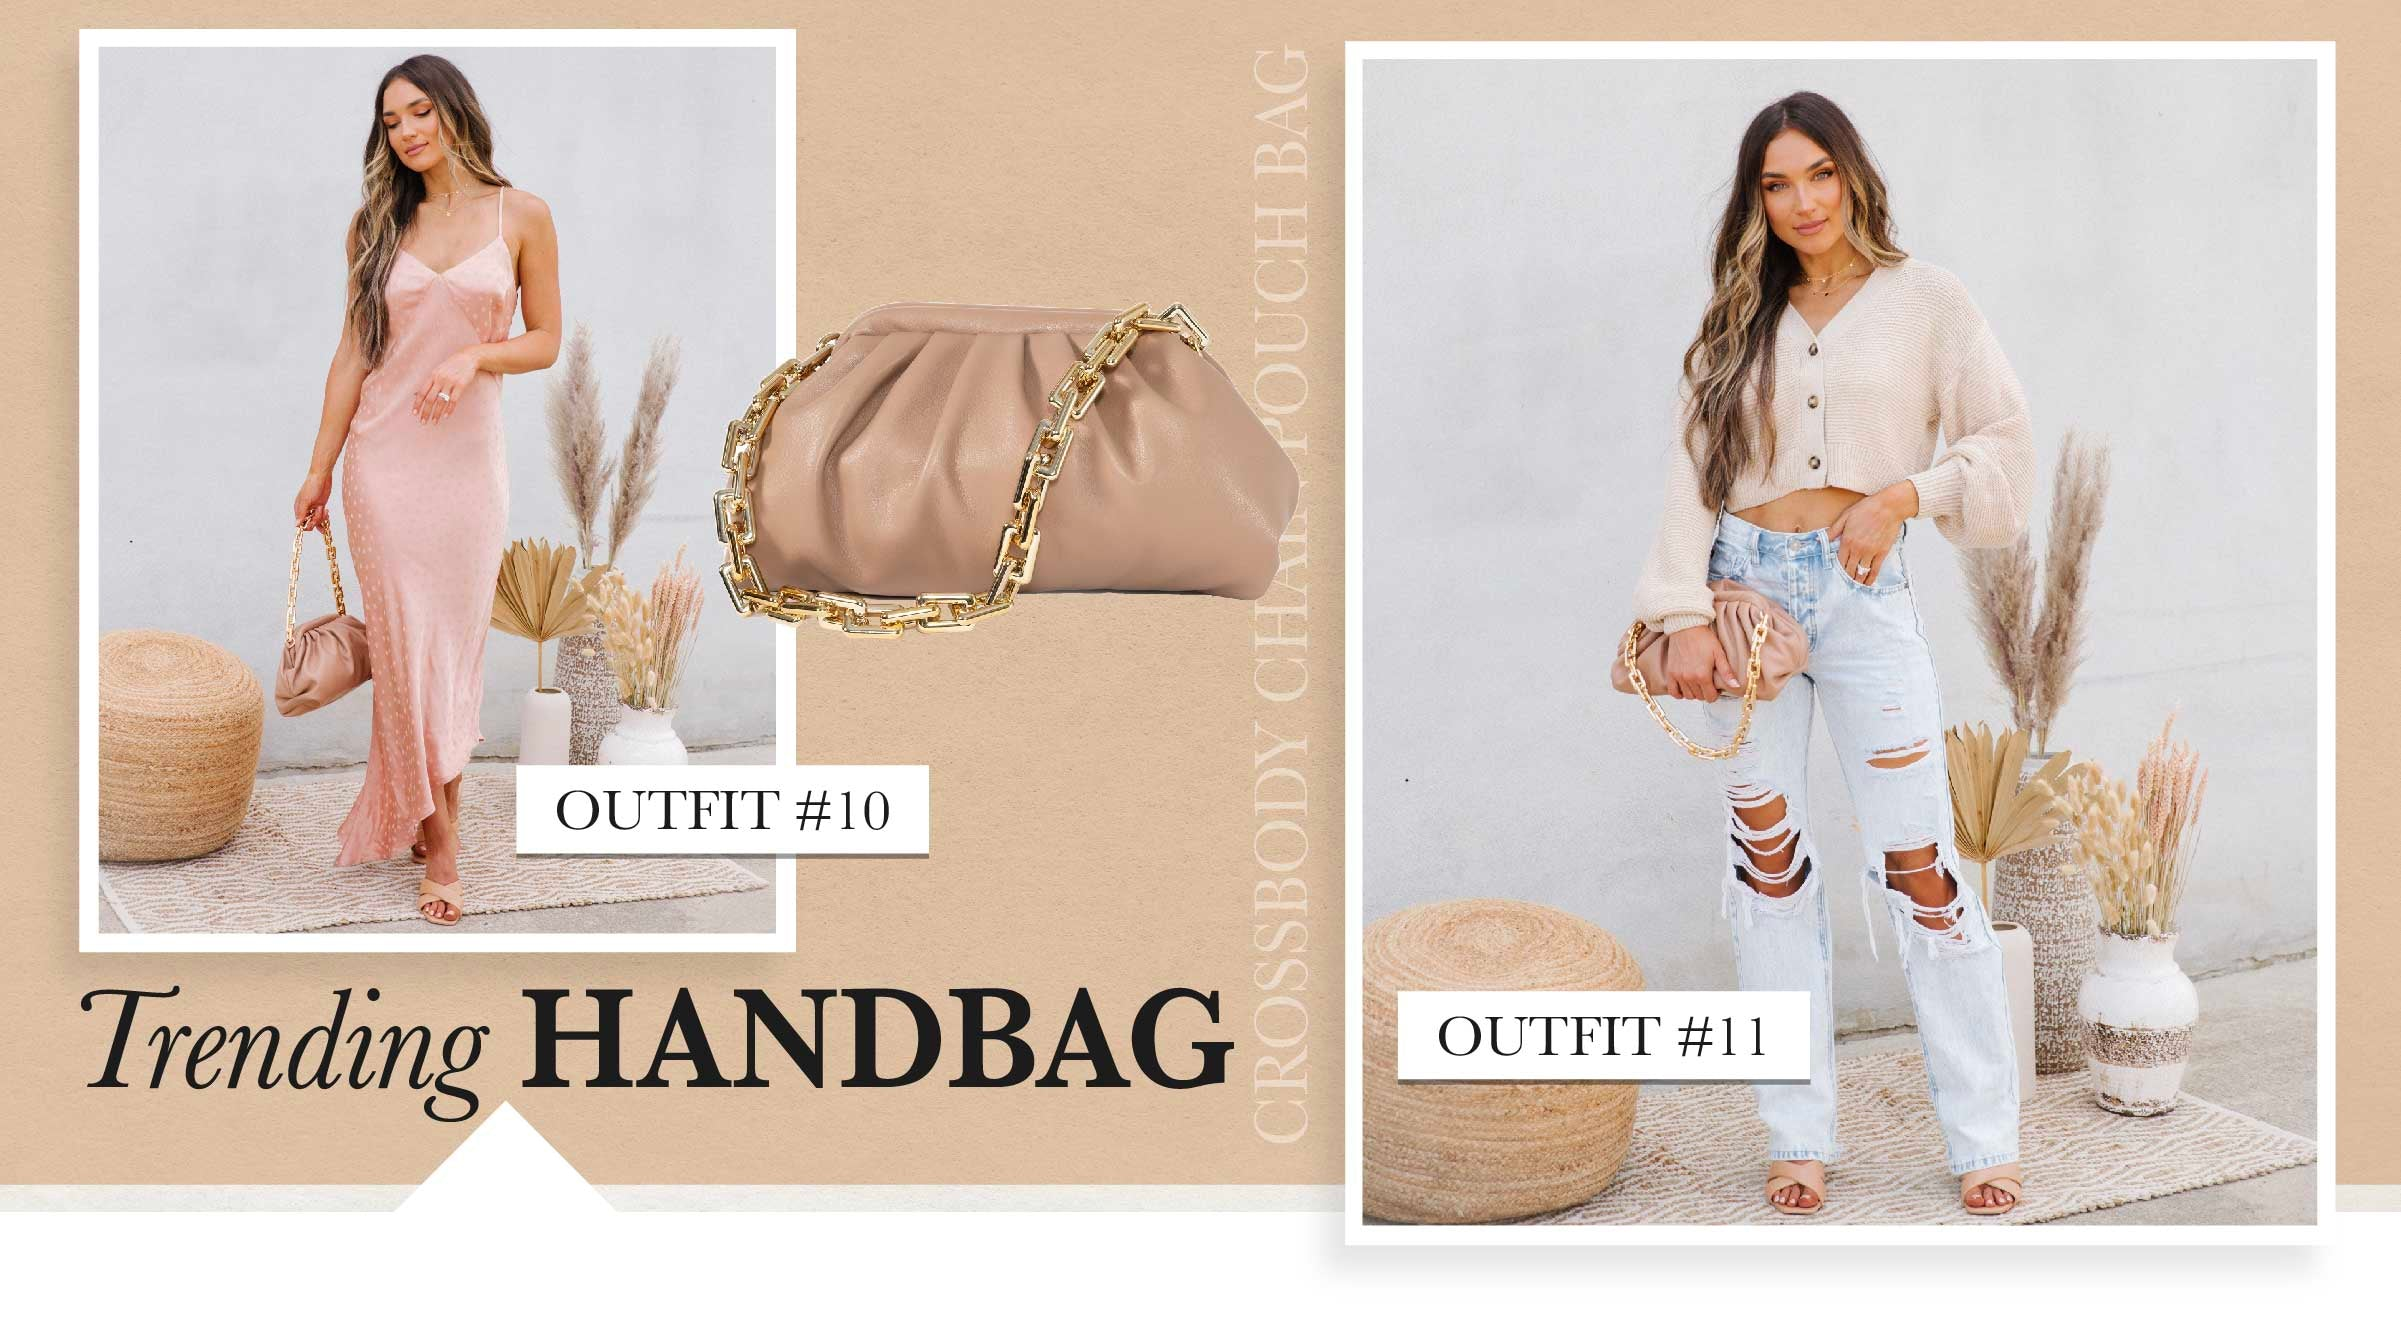 Haven't you heard? Crinkly clutches are the newest trend! These puffy purses look so chic paired with every kind of outfit from fancy to casual. The chunky gold chain link handle makes this must-have accessory look uber high-quality.